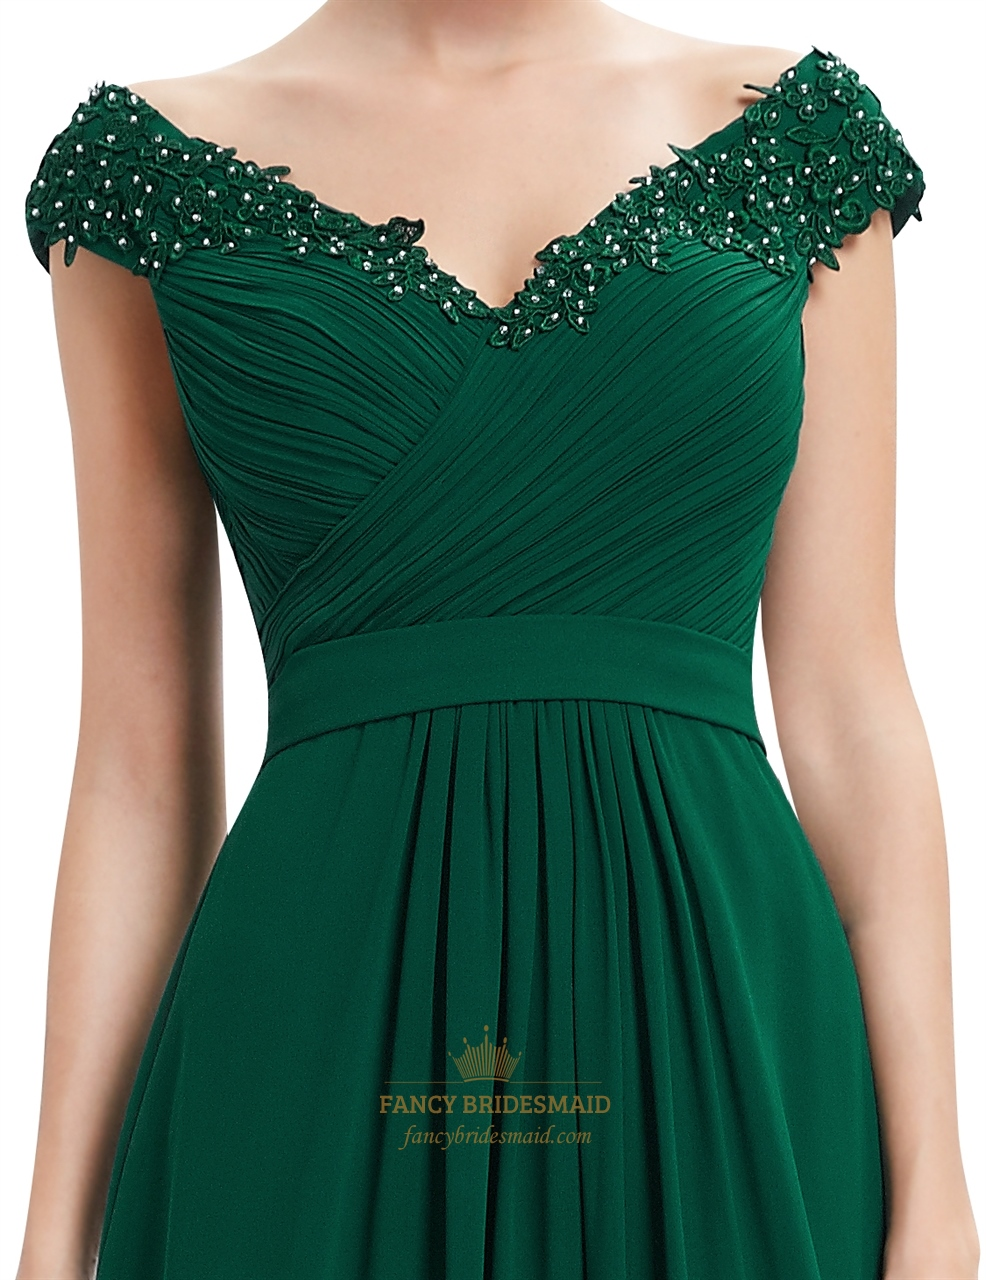 Do you feel to give up when you are in shops buying our emerald green formal dresses. There is amazing collection on sale today!